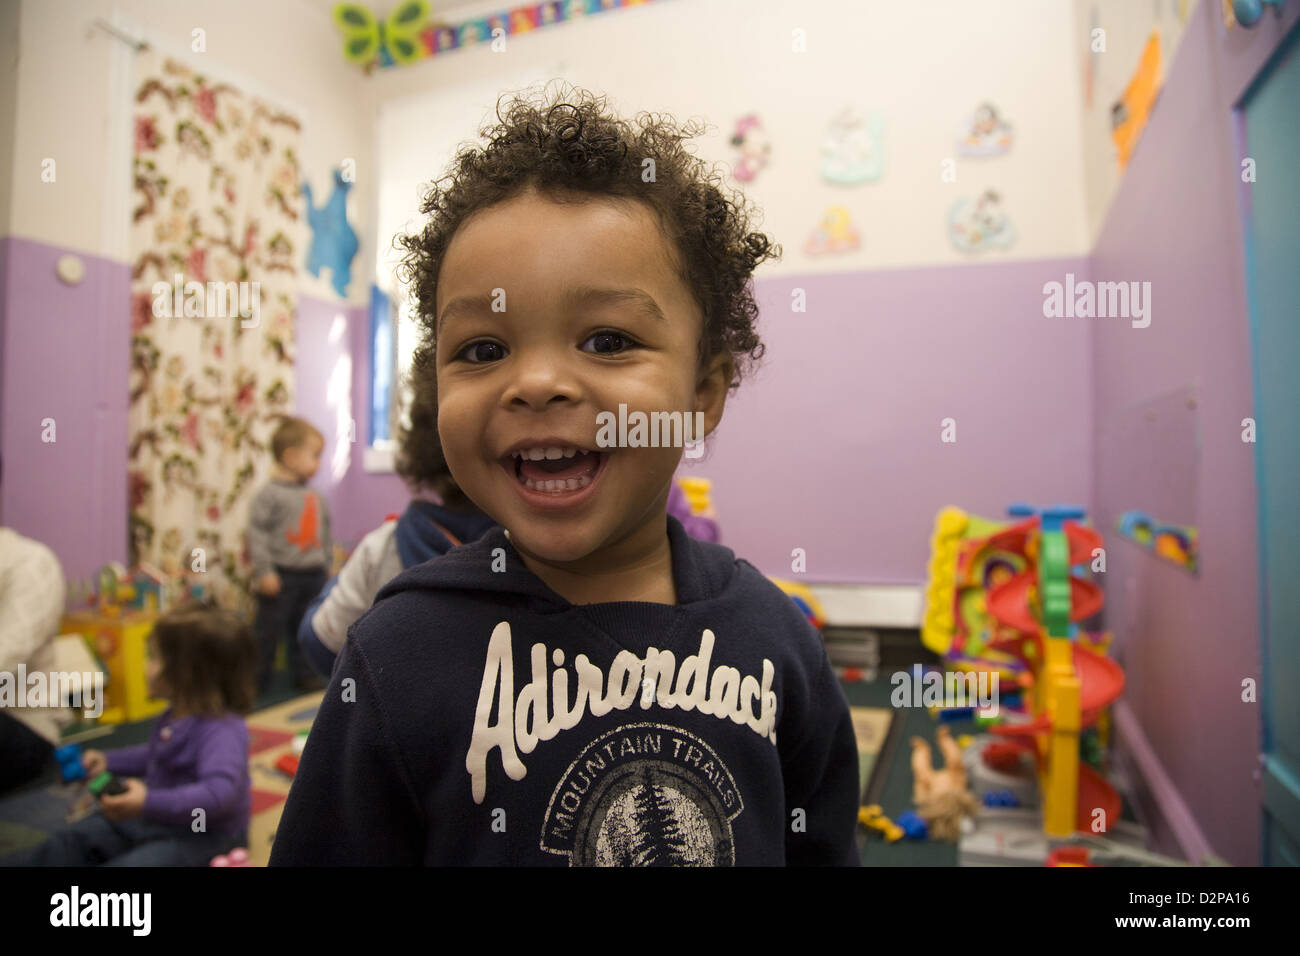 Kids Are Us Nursery school/early learning center in the highly multicultural Kensington neighborhood of Brooklyn, - Stock Image